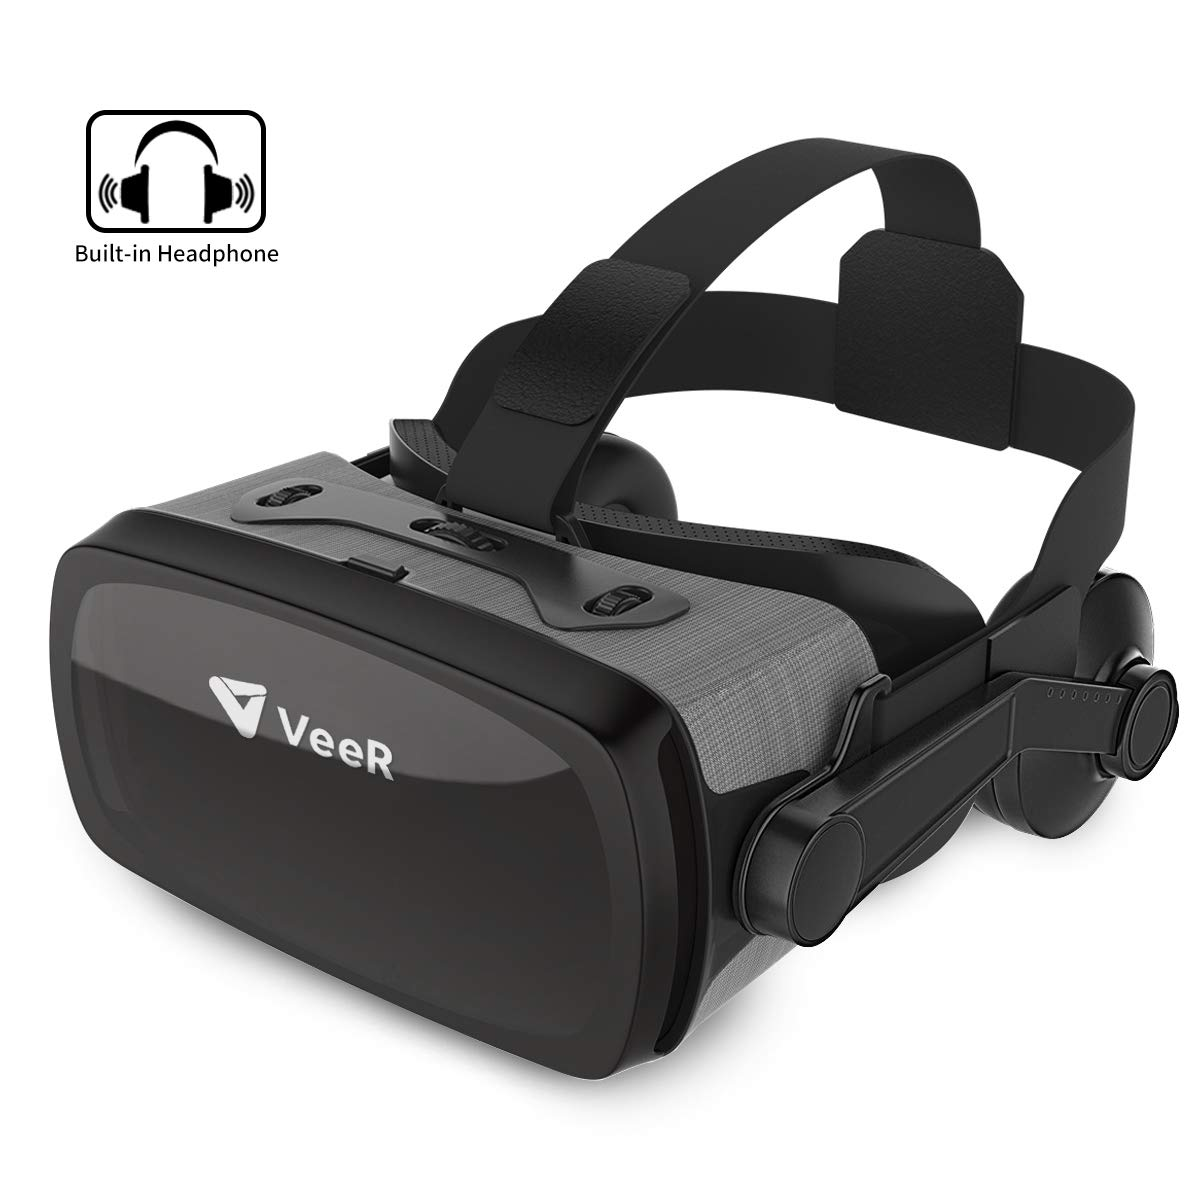 VeeR VR Falcon Headset, Universal Virtual Reality Goggles to Comfortable Watch 360 Movies for Android, Samsung Galaxy S9 & Note 9, Huawei and iPhone XR & Xs Max